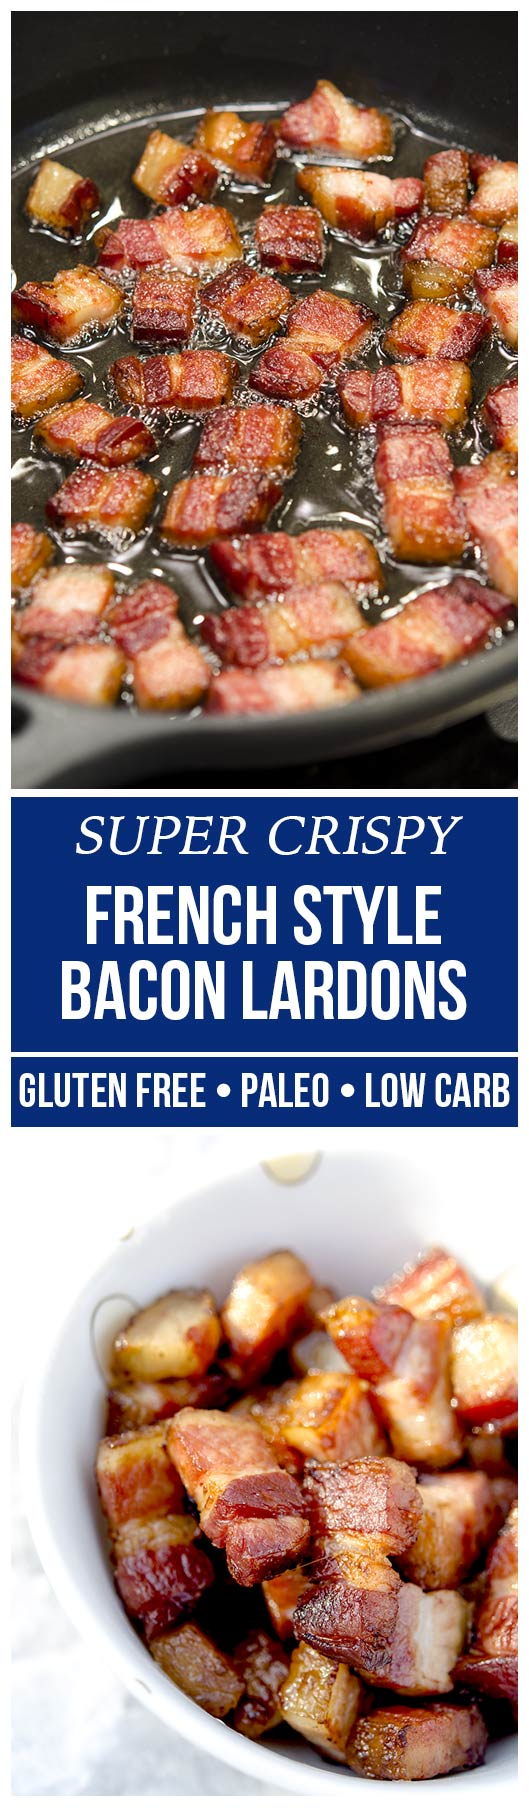 These French style bacon lardons are incredibly easy to make, resulting in tender yet crispy lardon ready to top salads, eggs or potatoes!